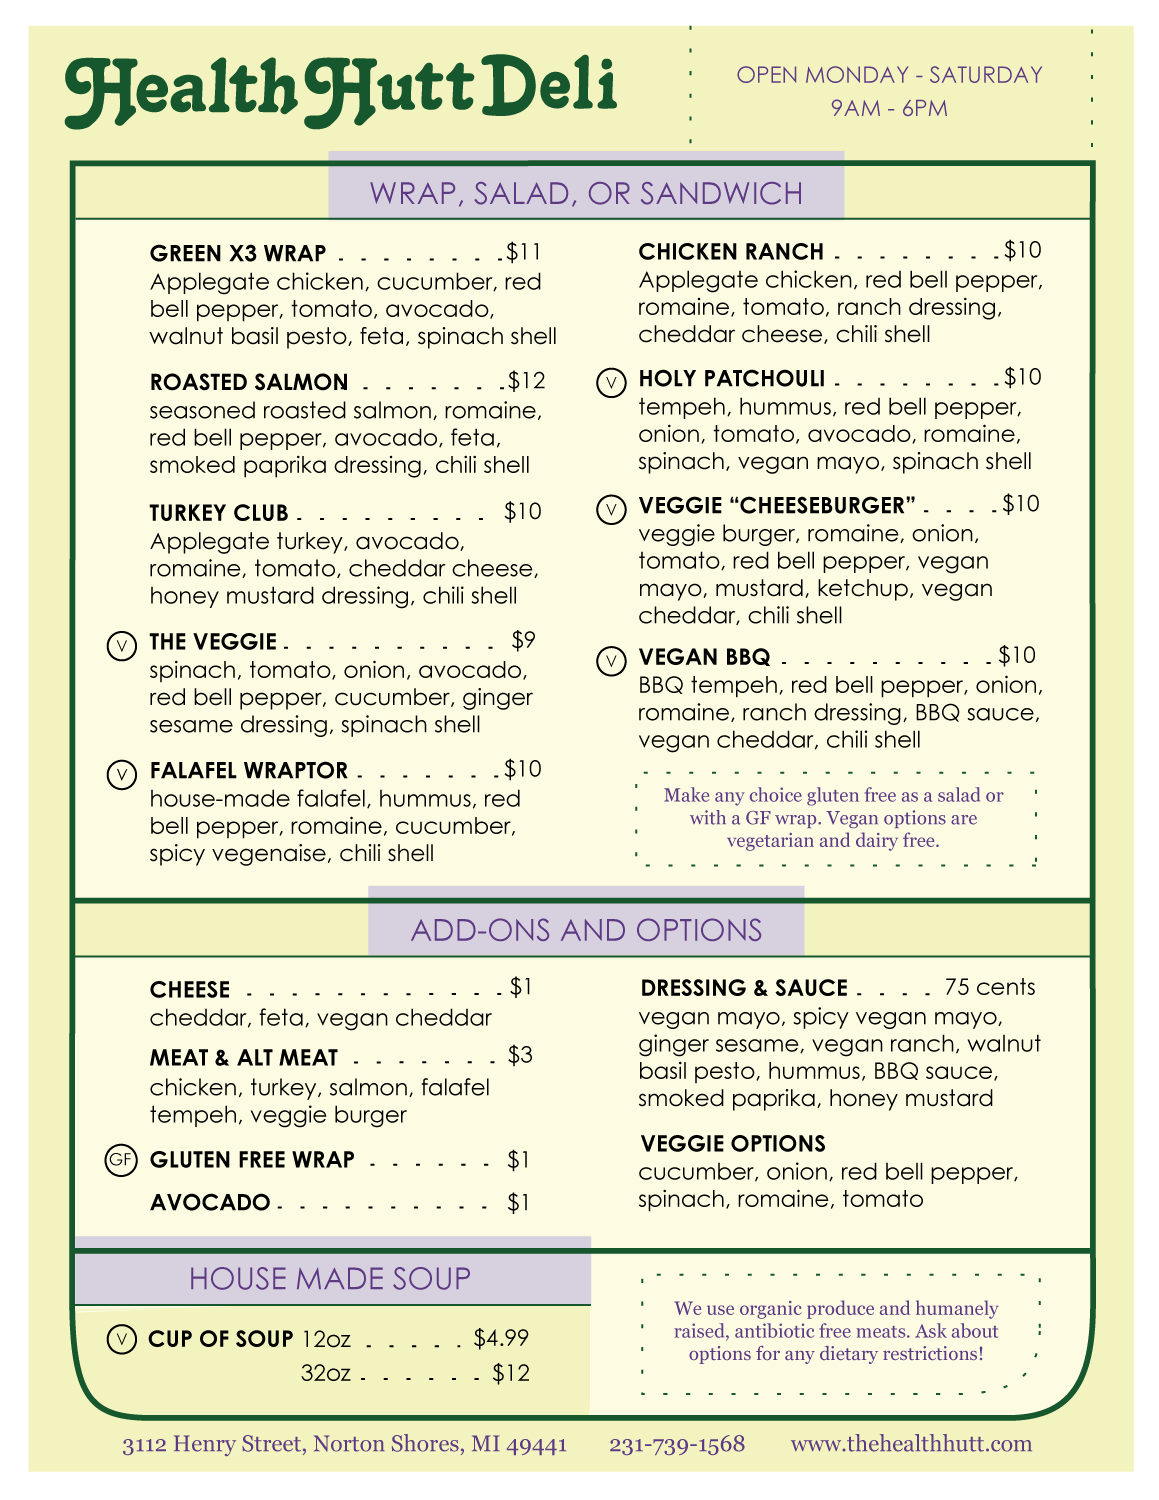 health-hutt-deli-menu-food-final-draft-july-2020